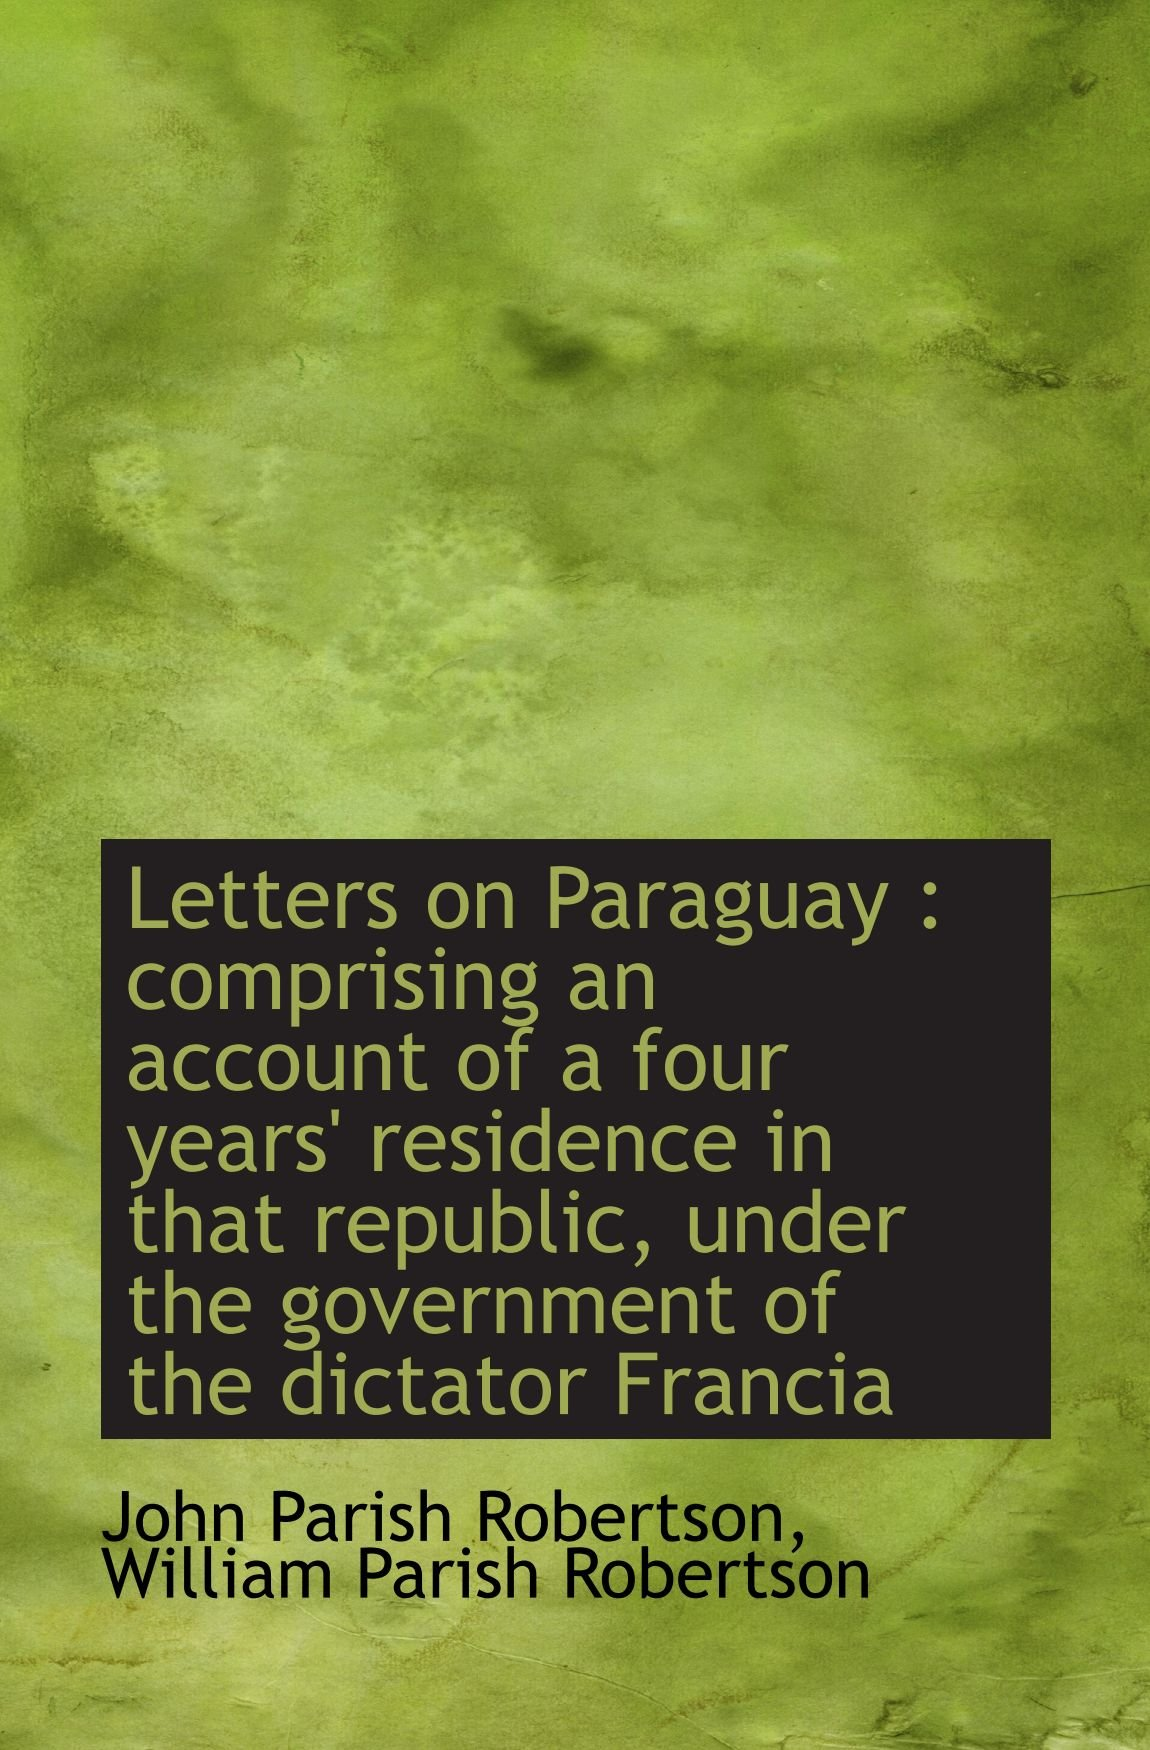 Letters on Paraguay : comprising an account of a four years' residence in that republic, under the g